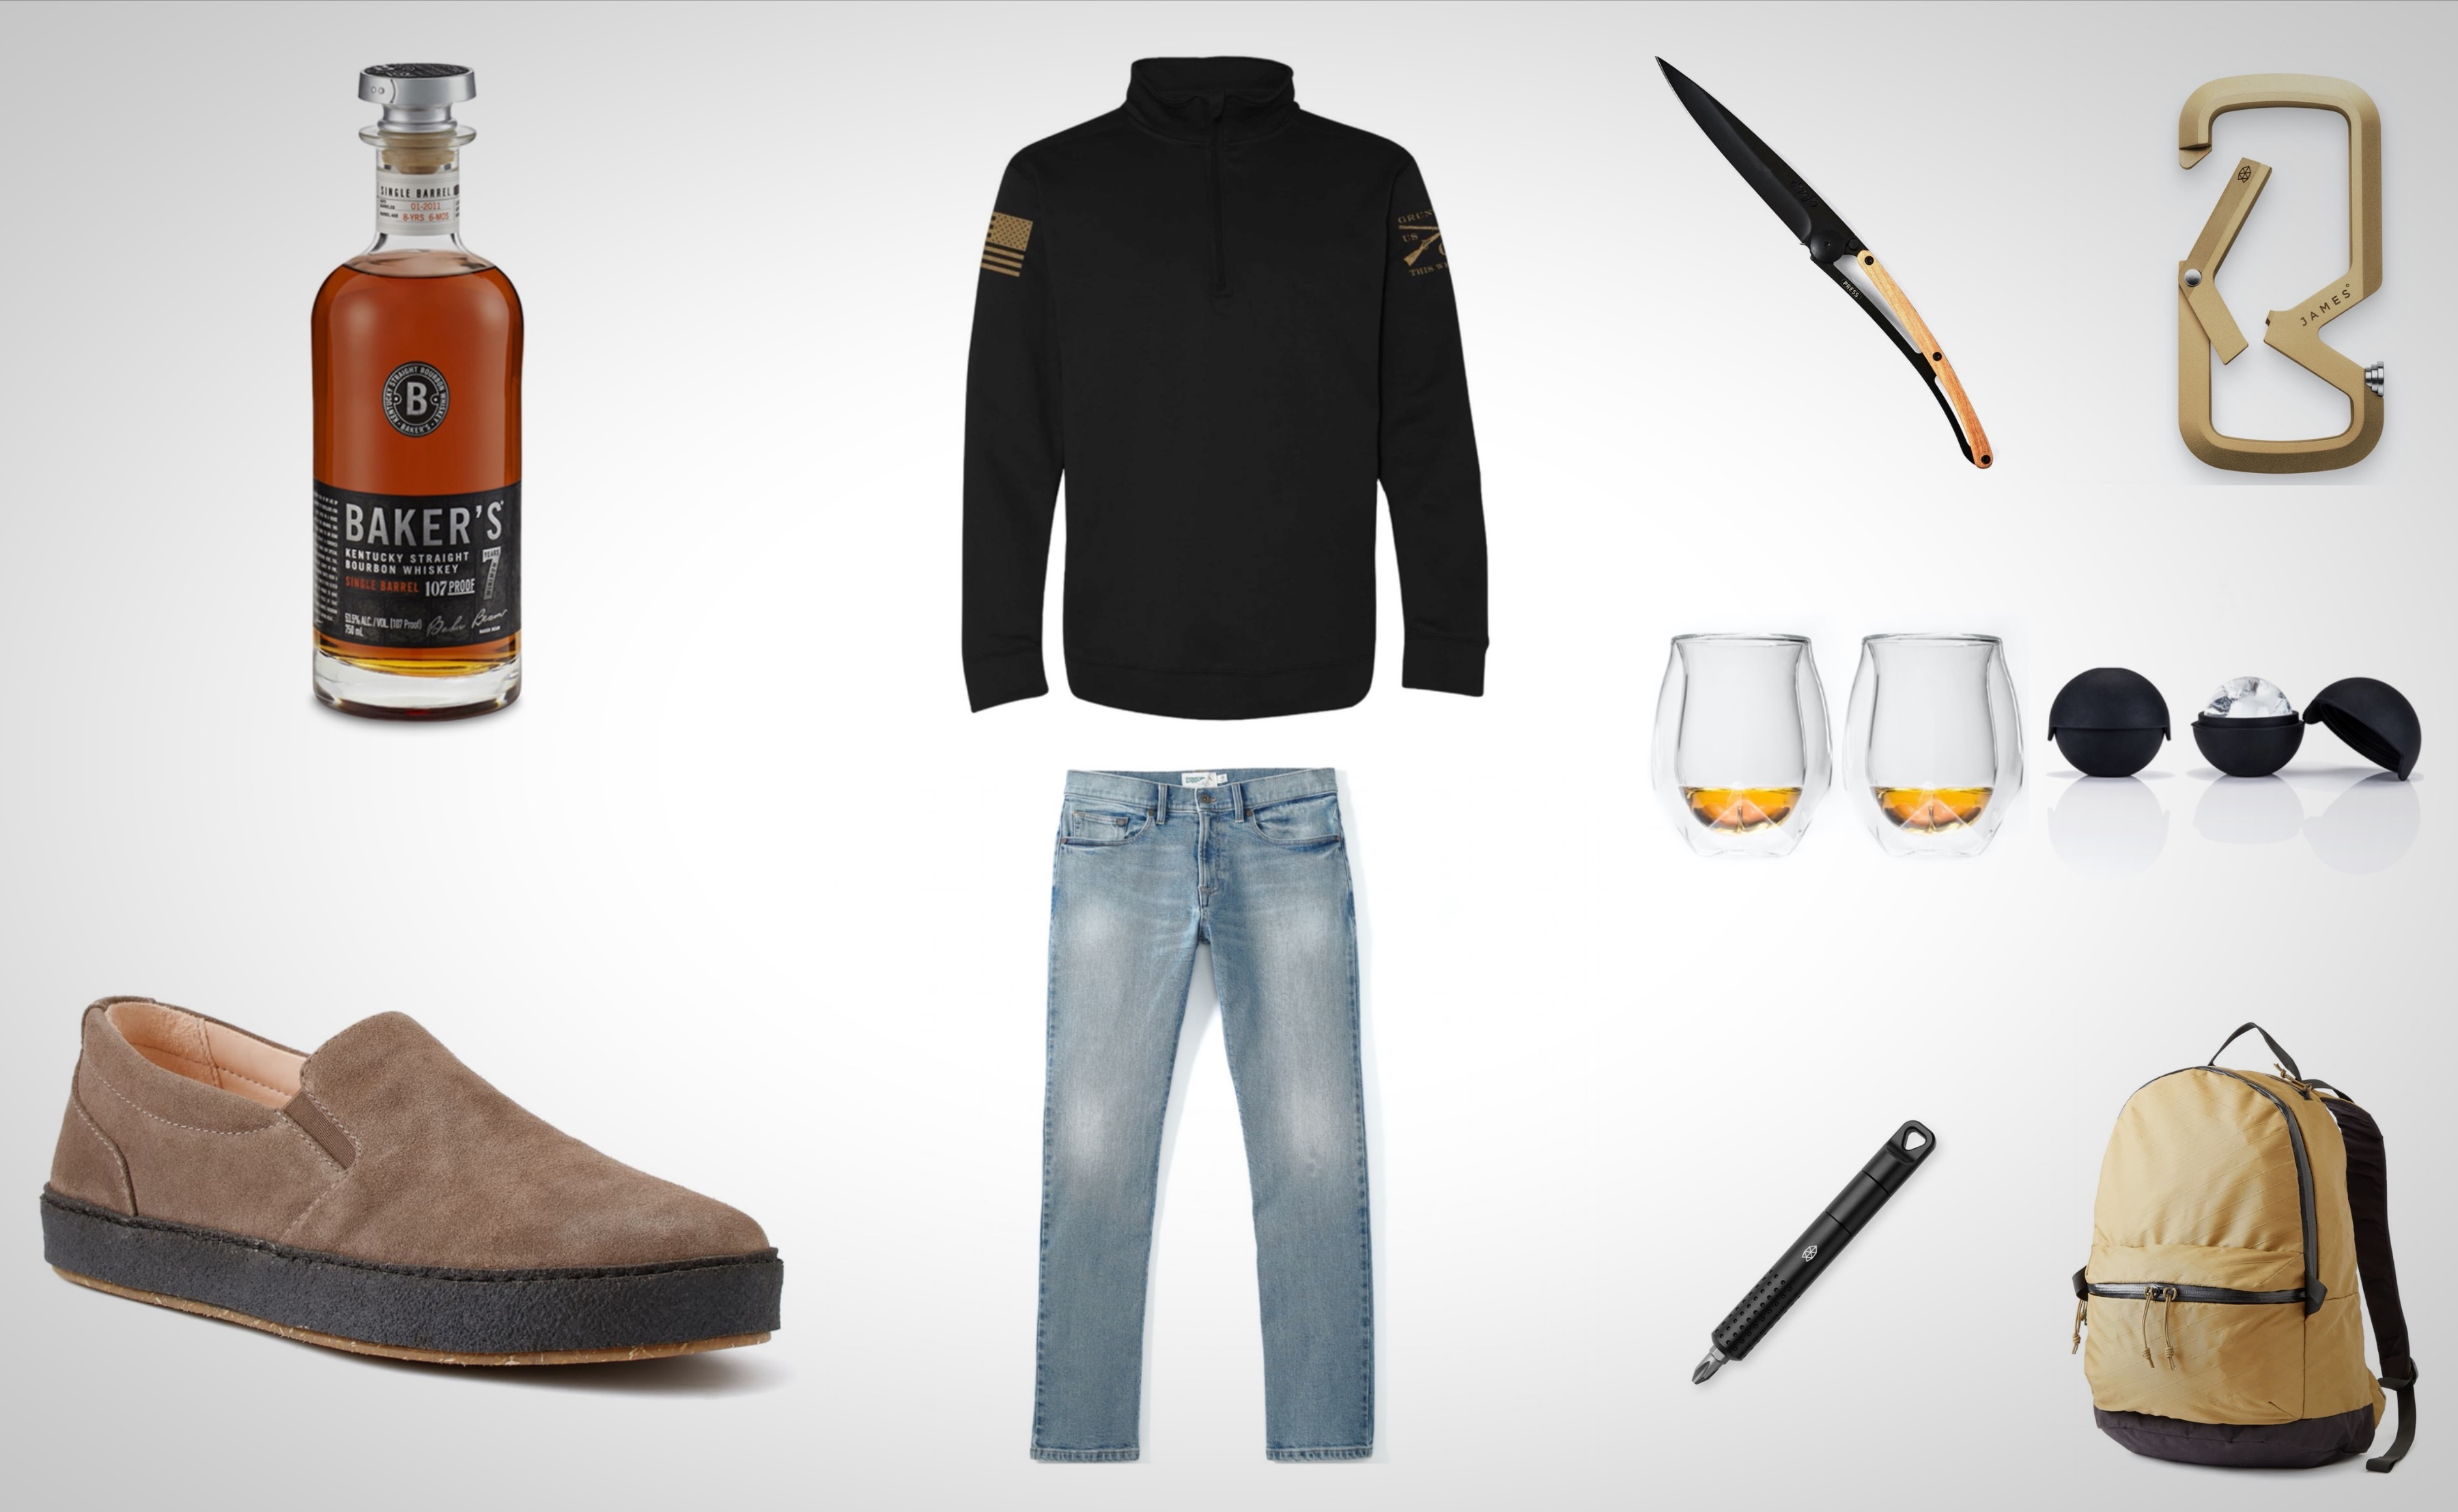 10 Everyday Carry Essentials For Living Your Best During The Holidays